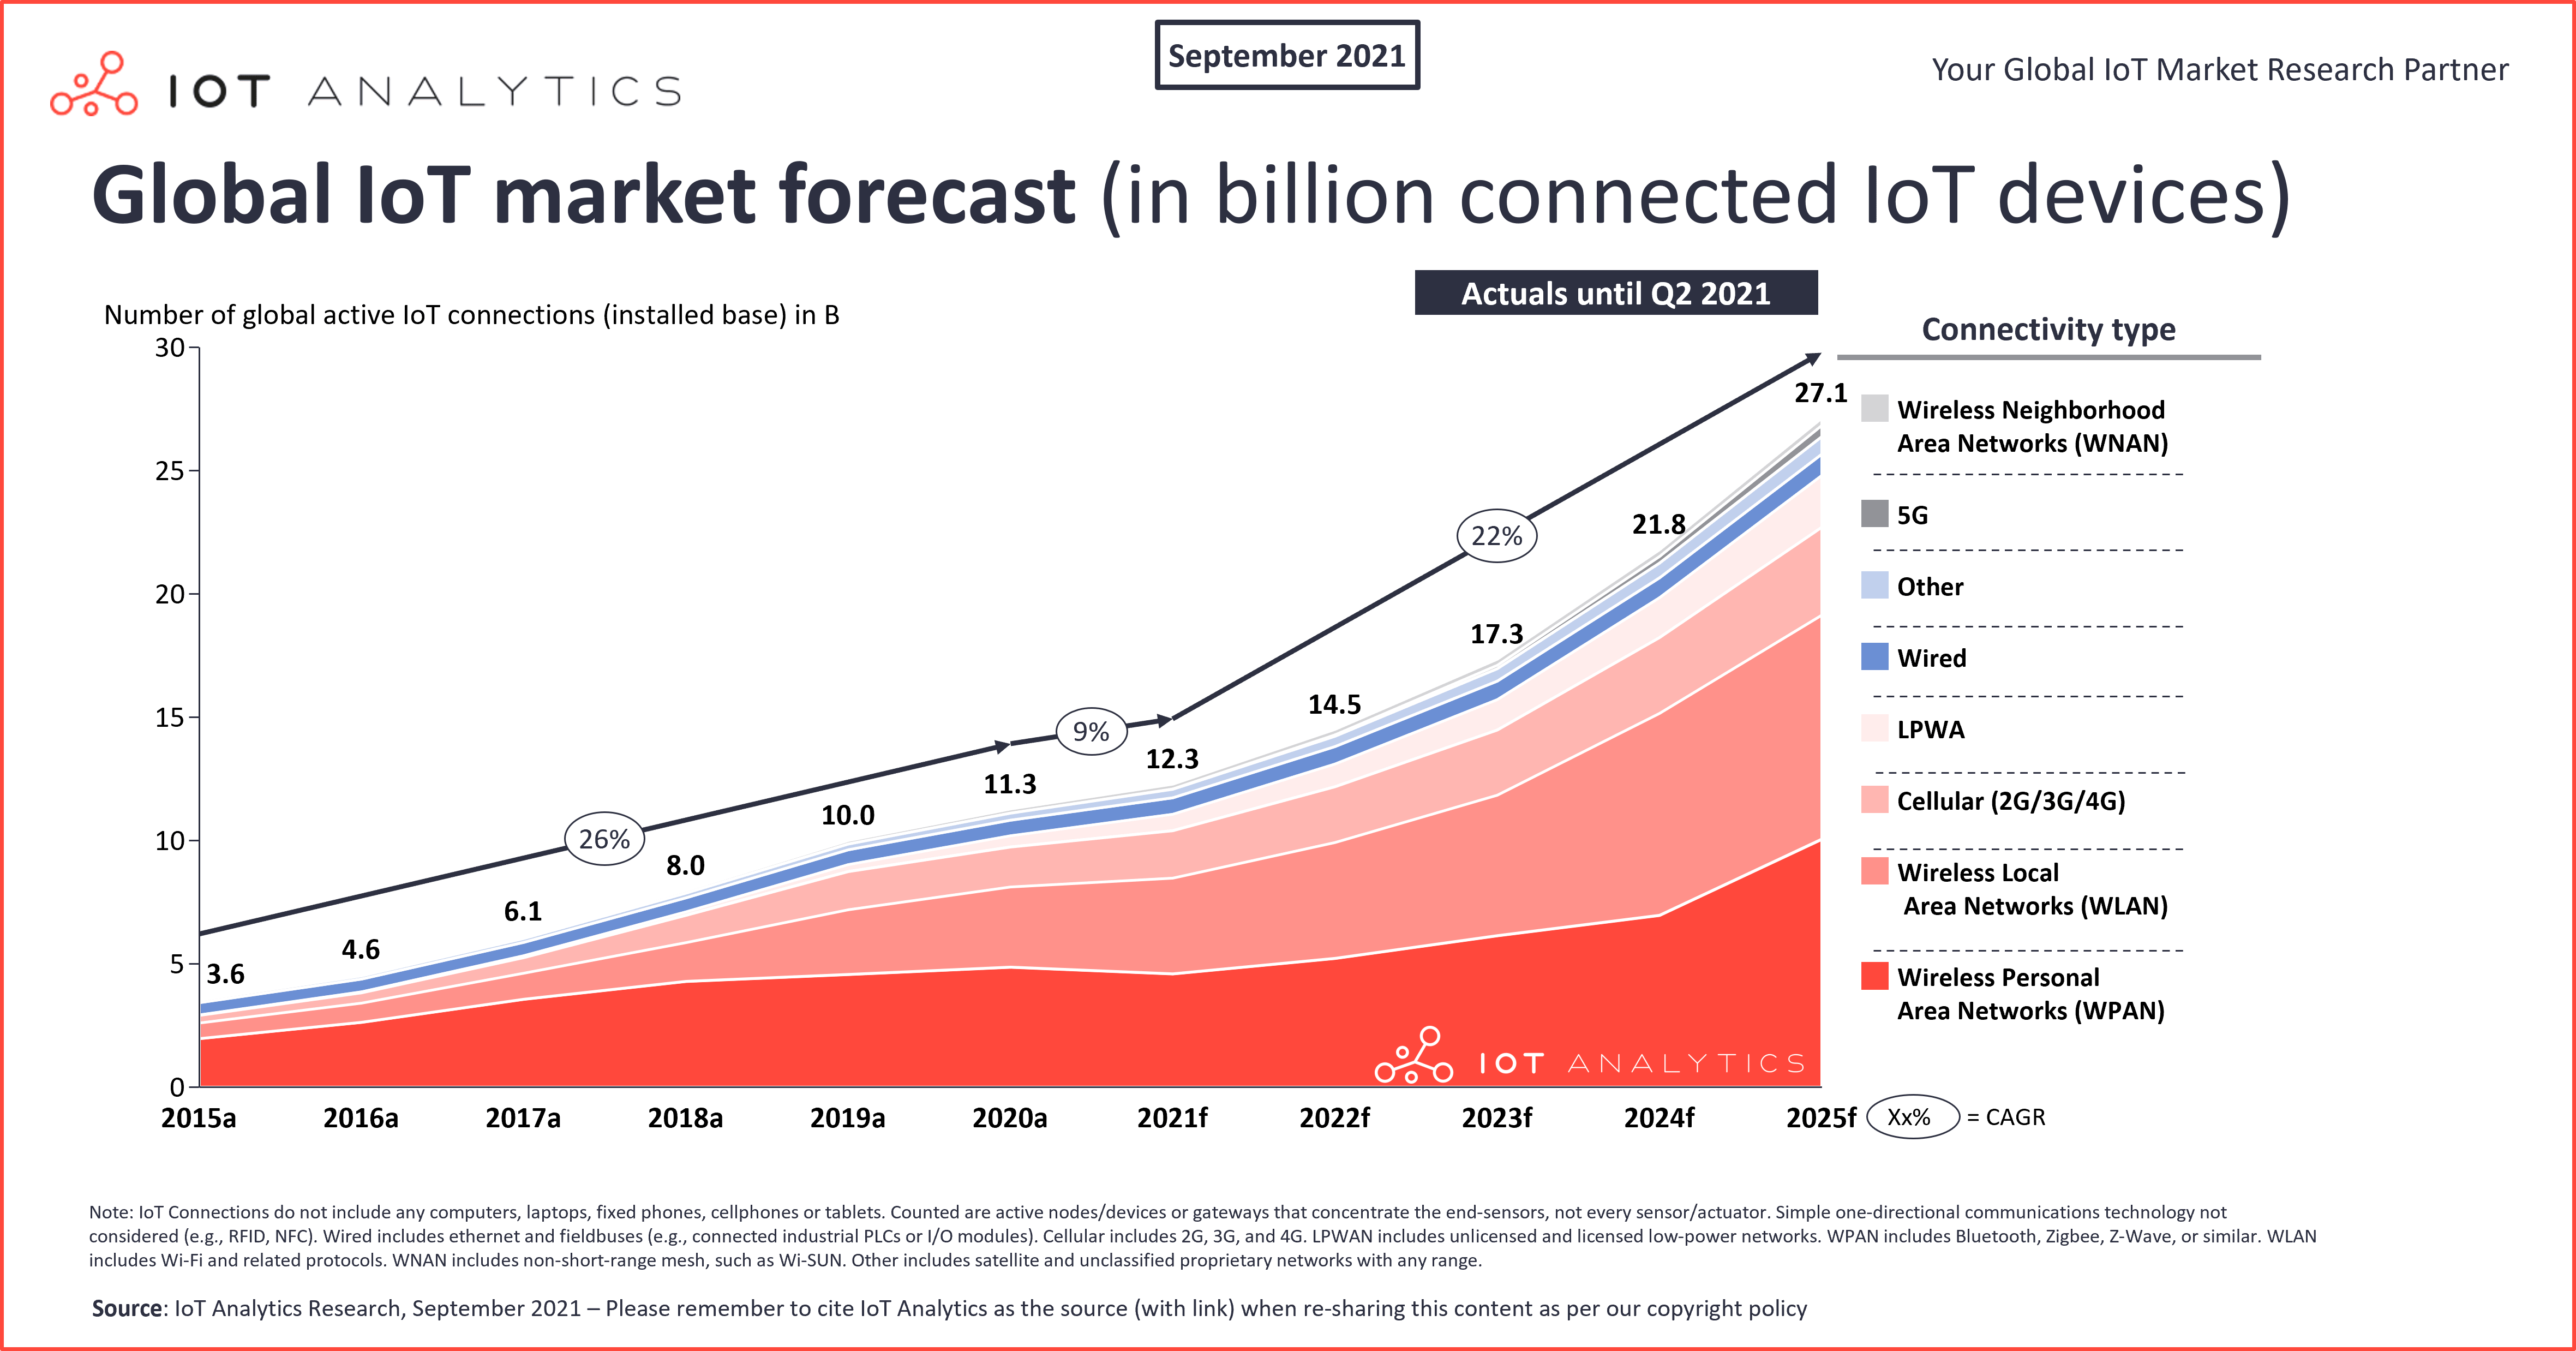 Global IoT Market forecast in billion connected iot devices